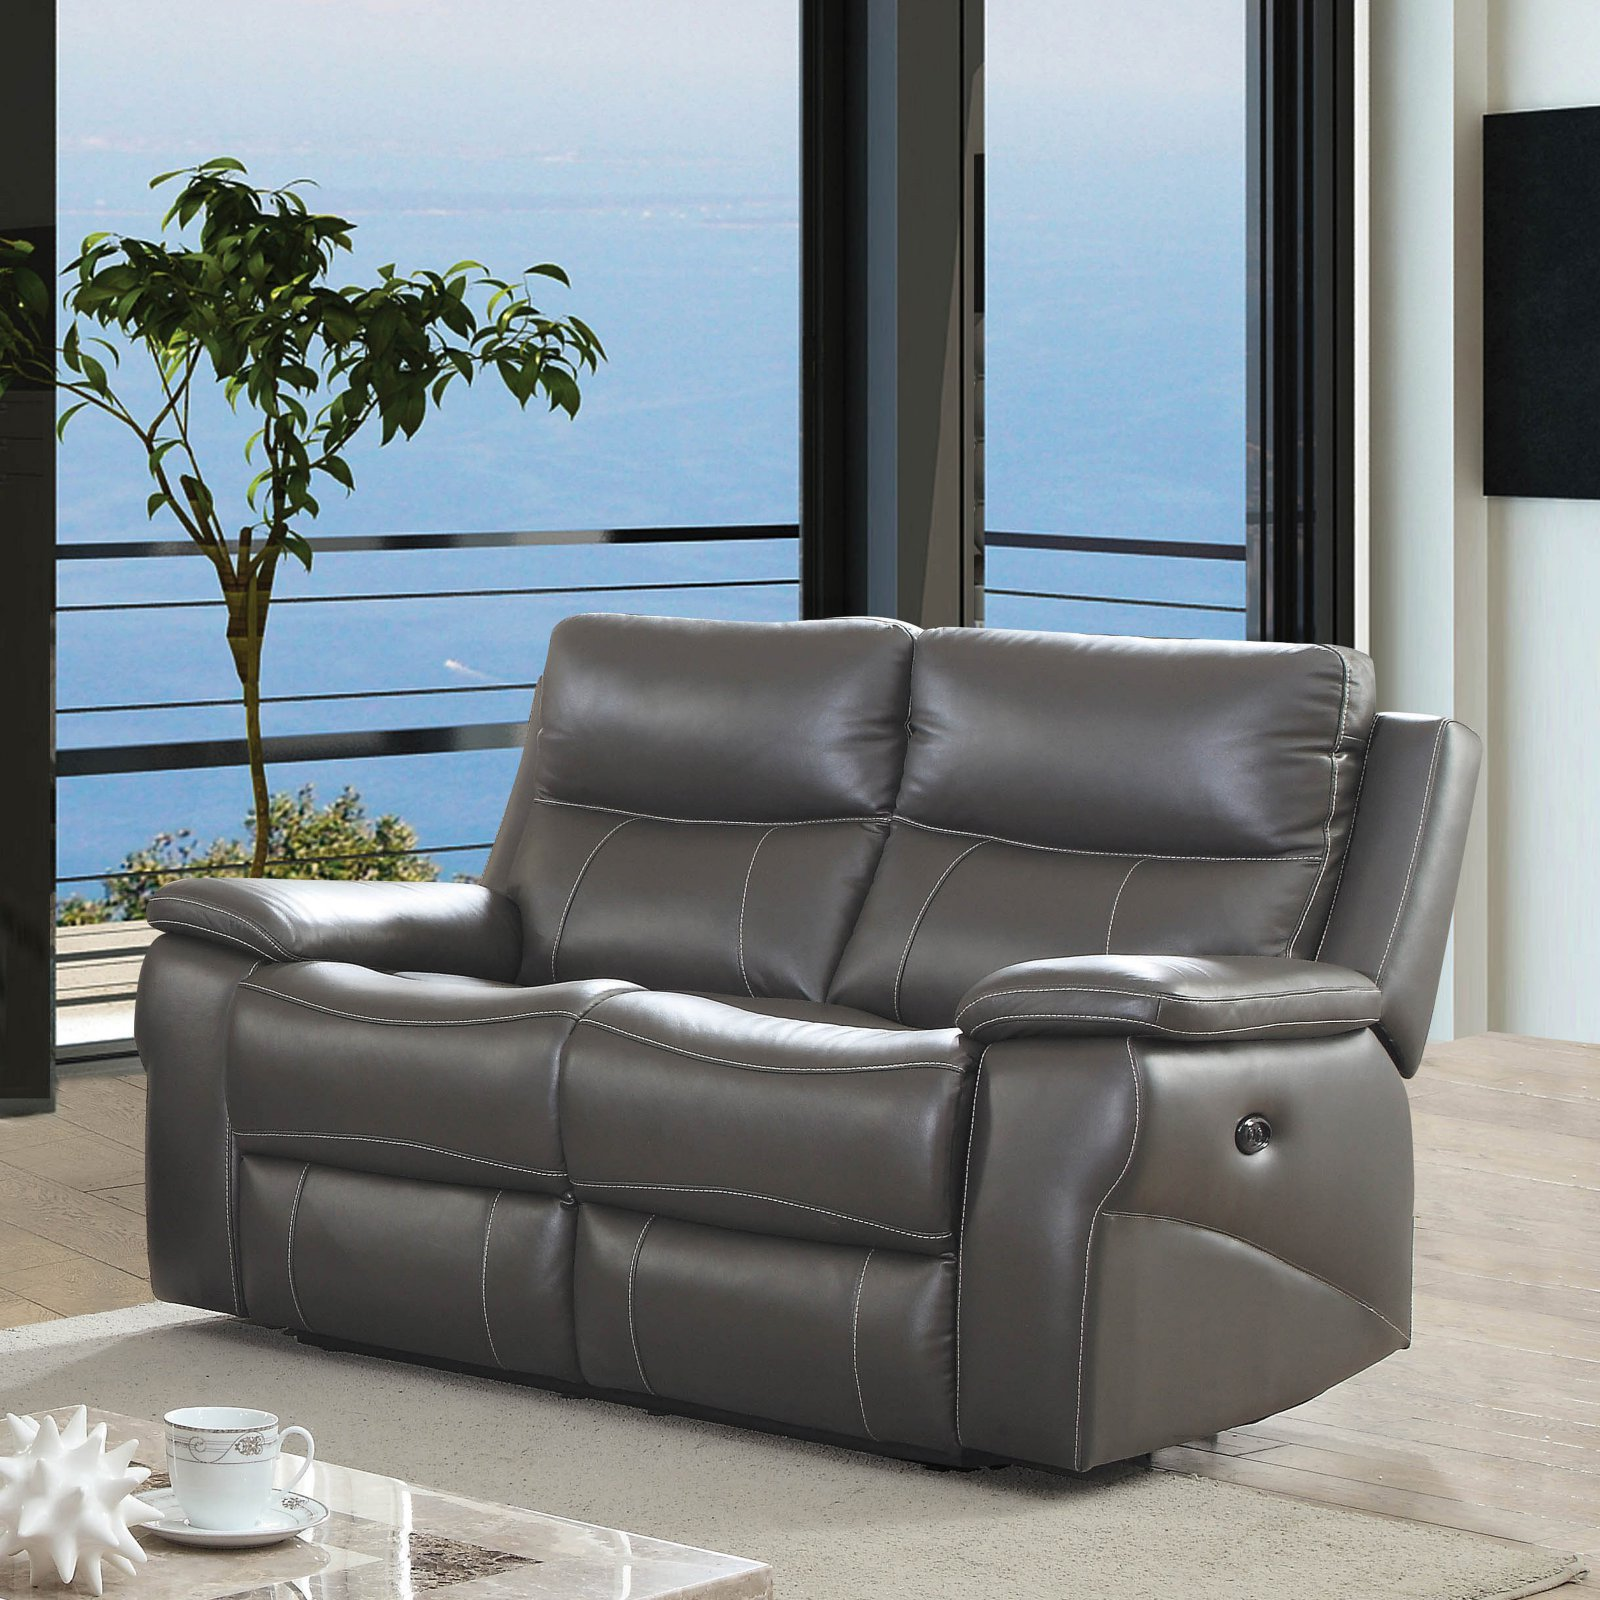 Furniture of America Michael Contemporary Leather Power Recliner Loveseat